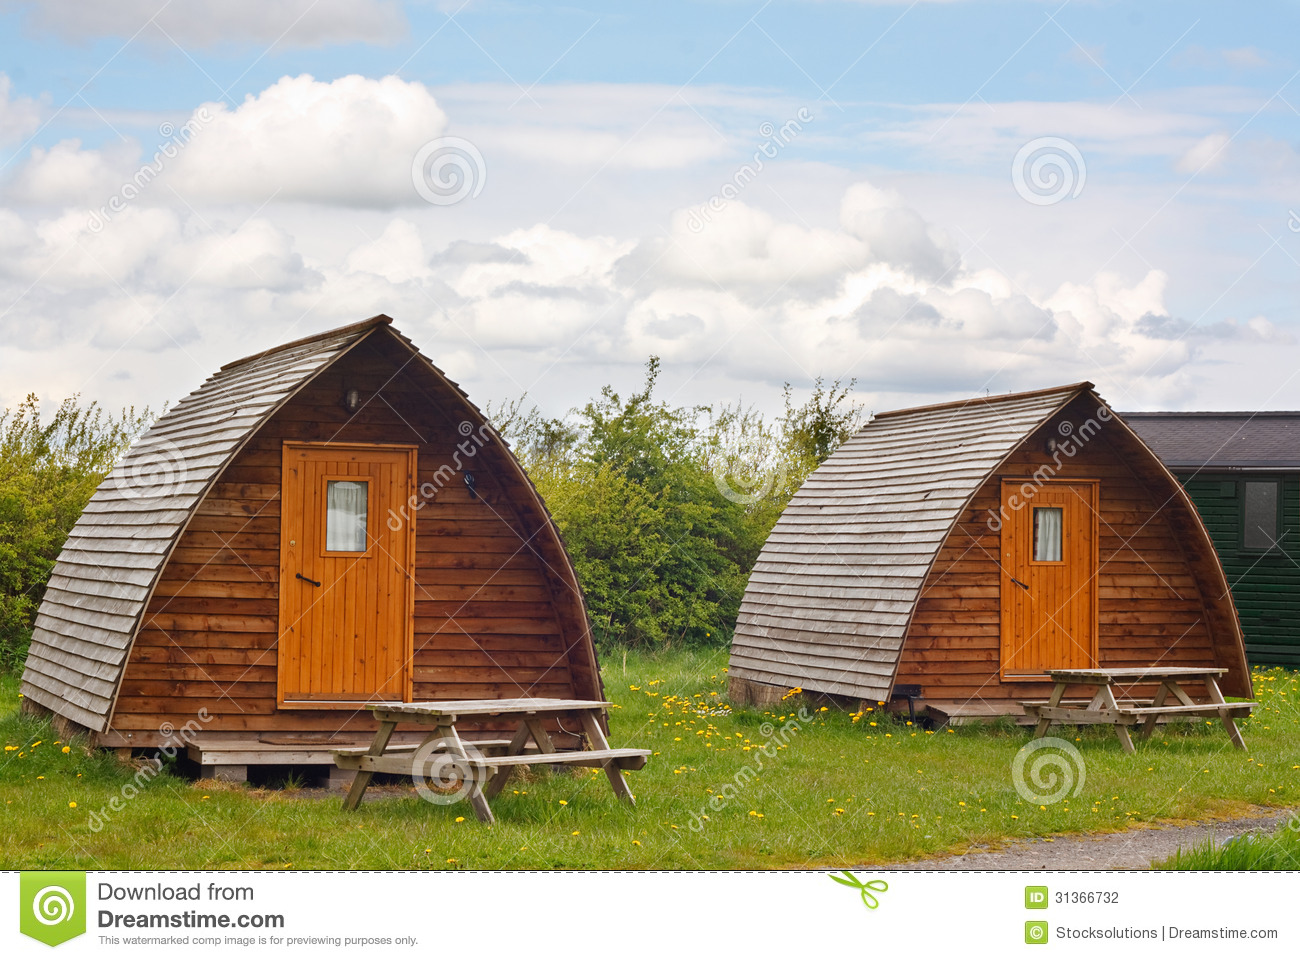 C&ing teepees & Camping teepees stock photo. Image of renewable premier - 31366732